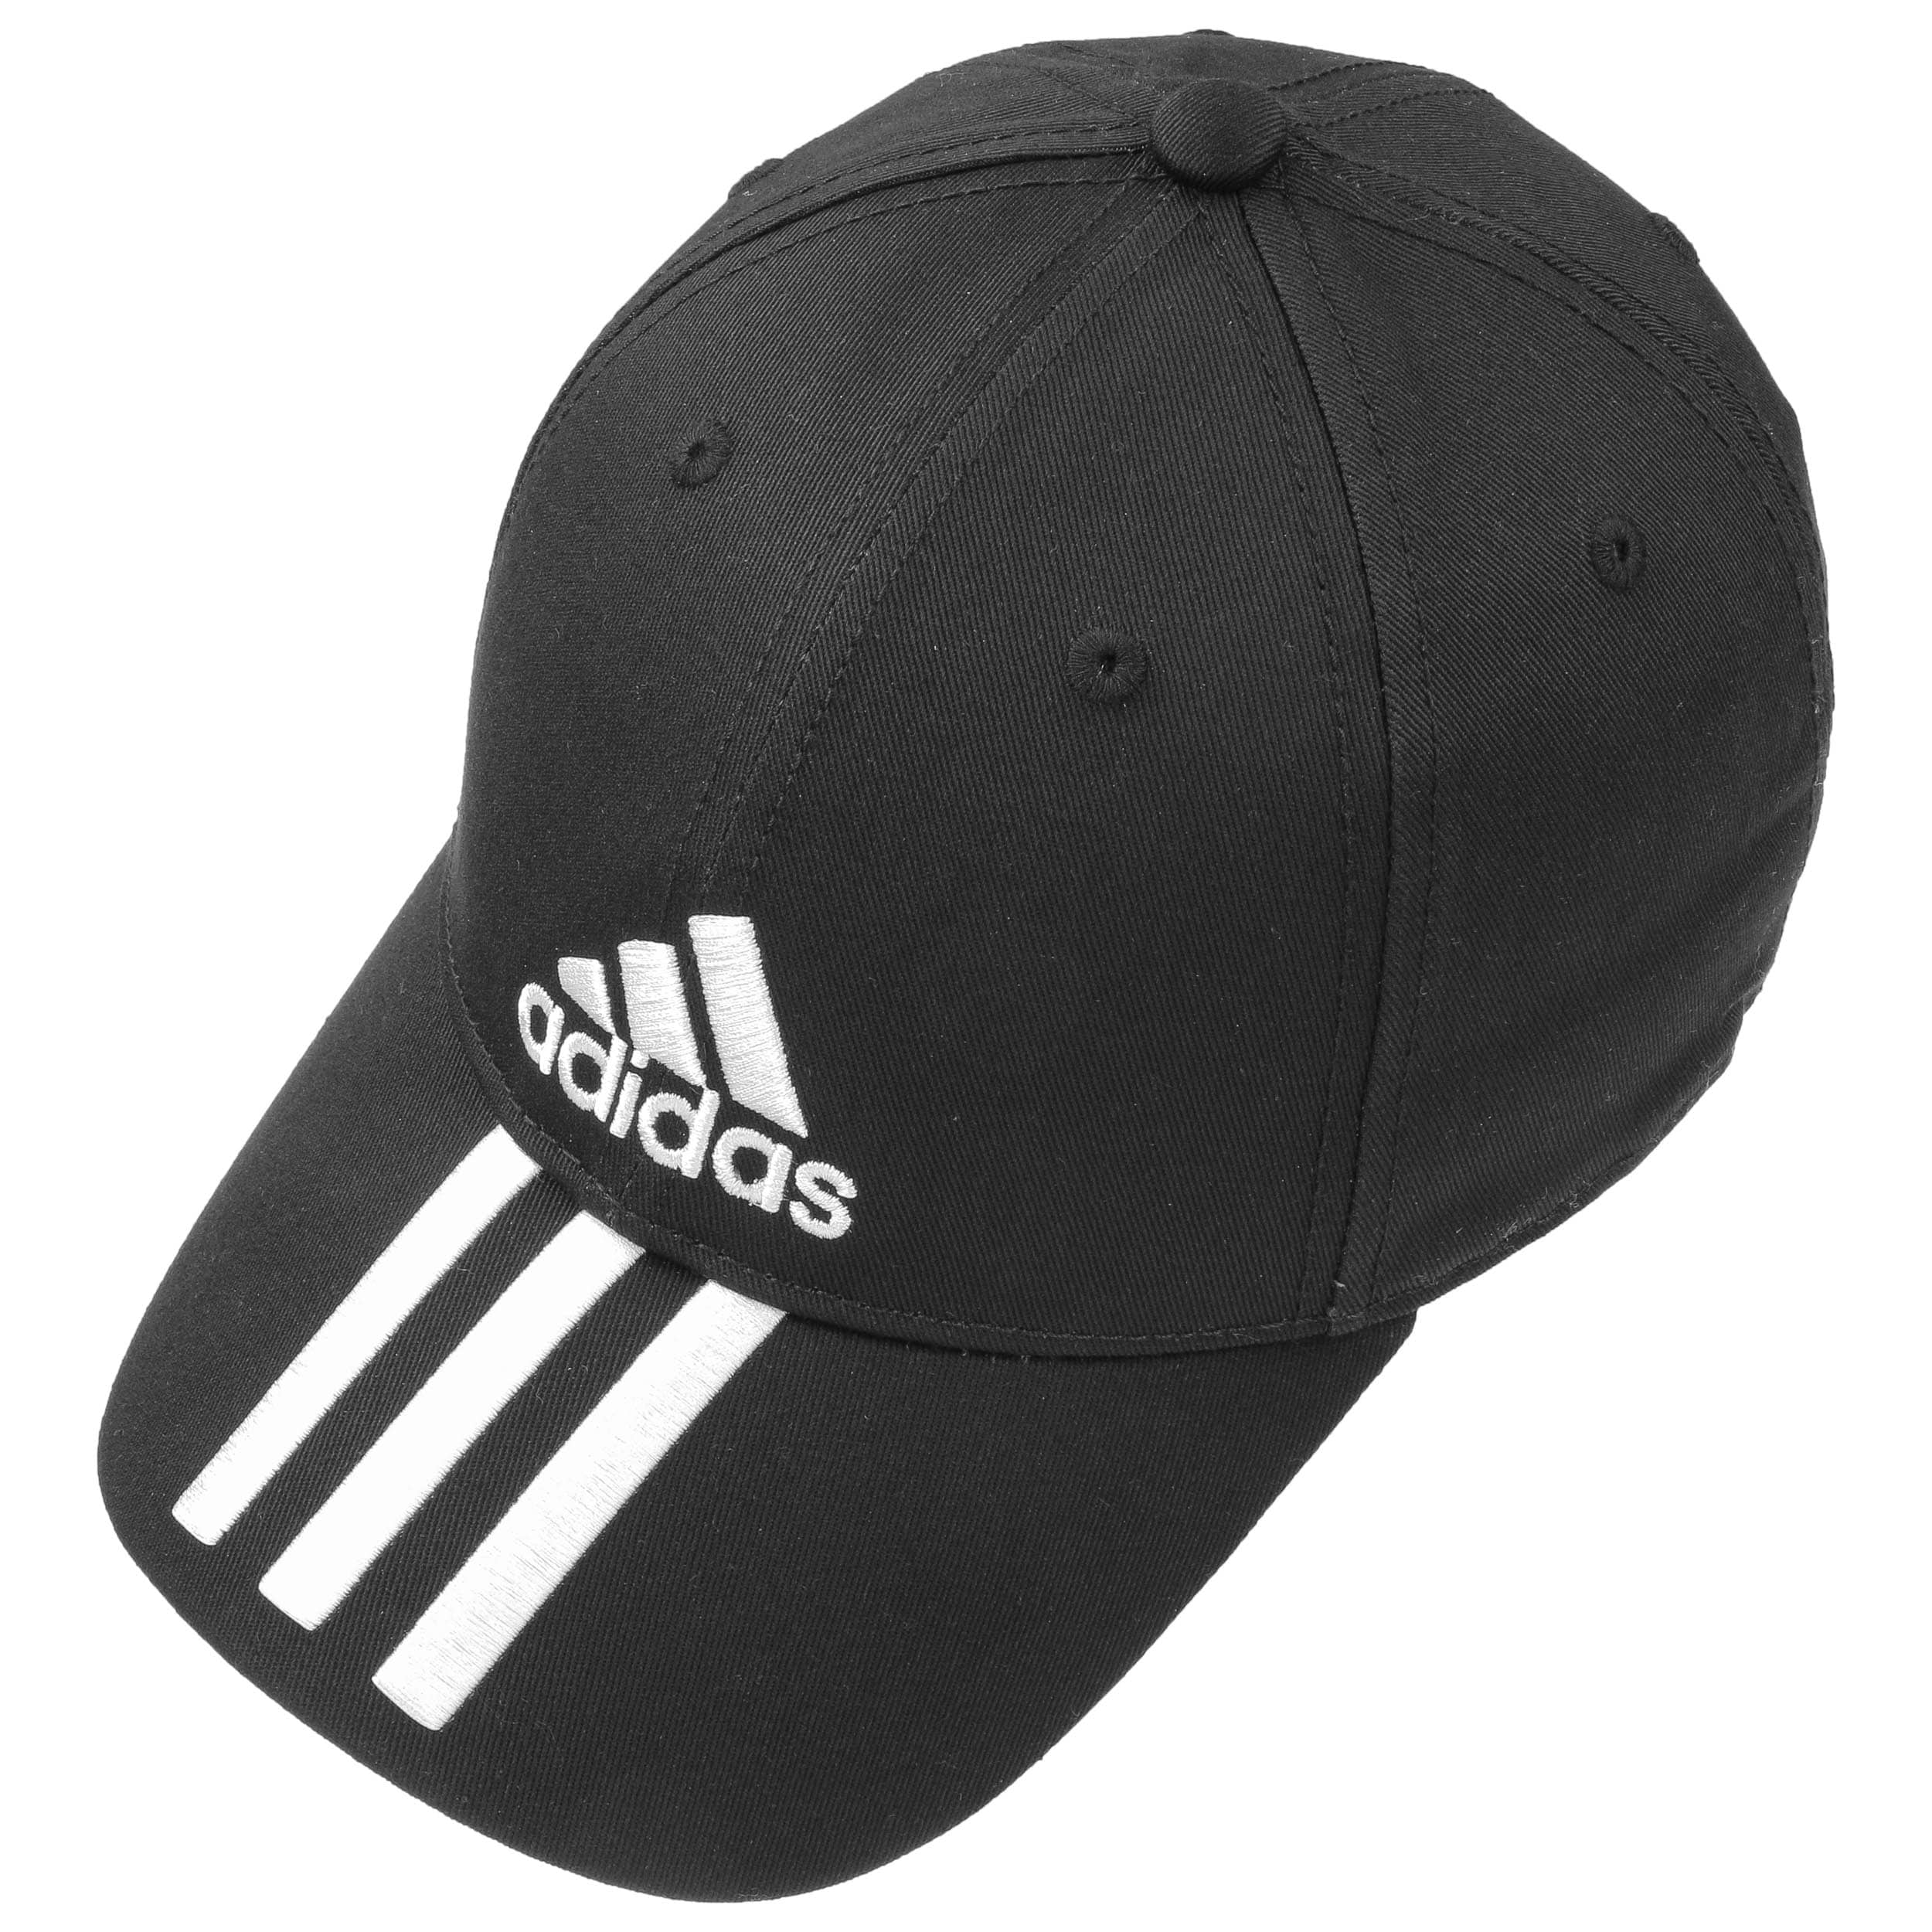 ... 6P 3S Cotton Strapback Cap by adidas - black 1 ... a969cae758d3